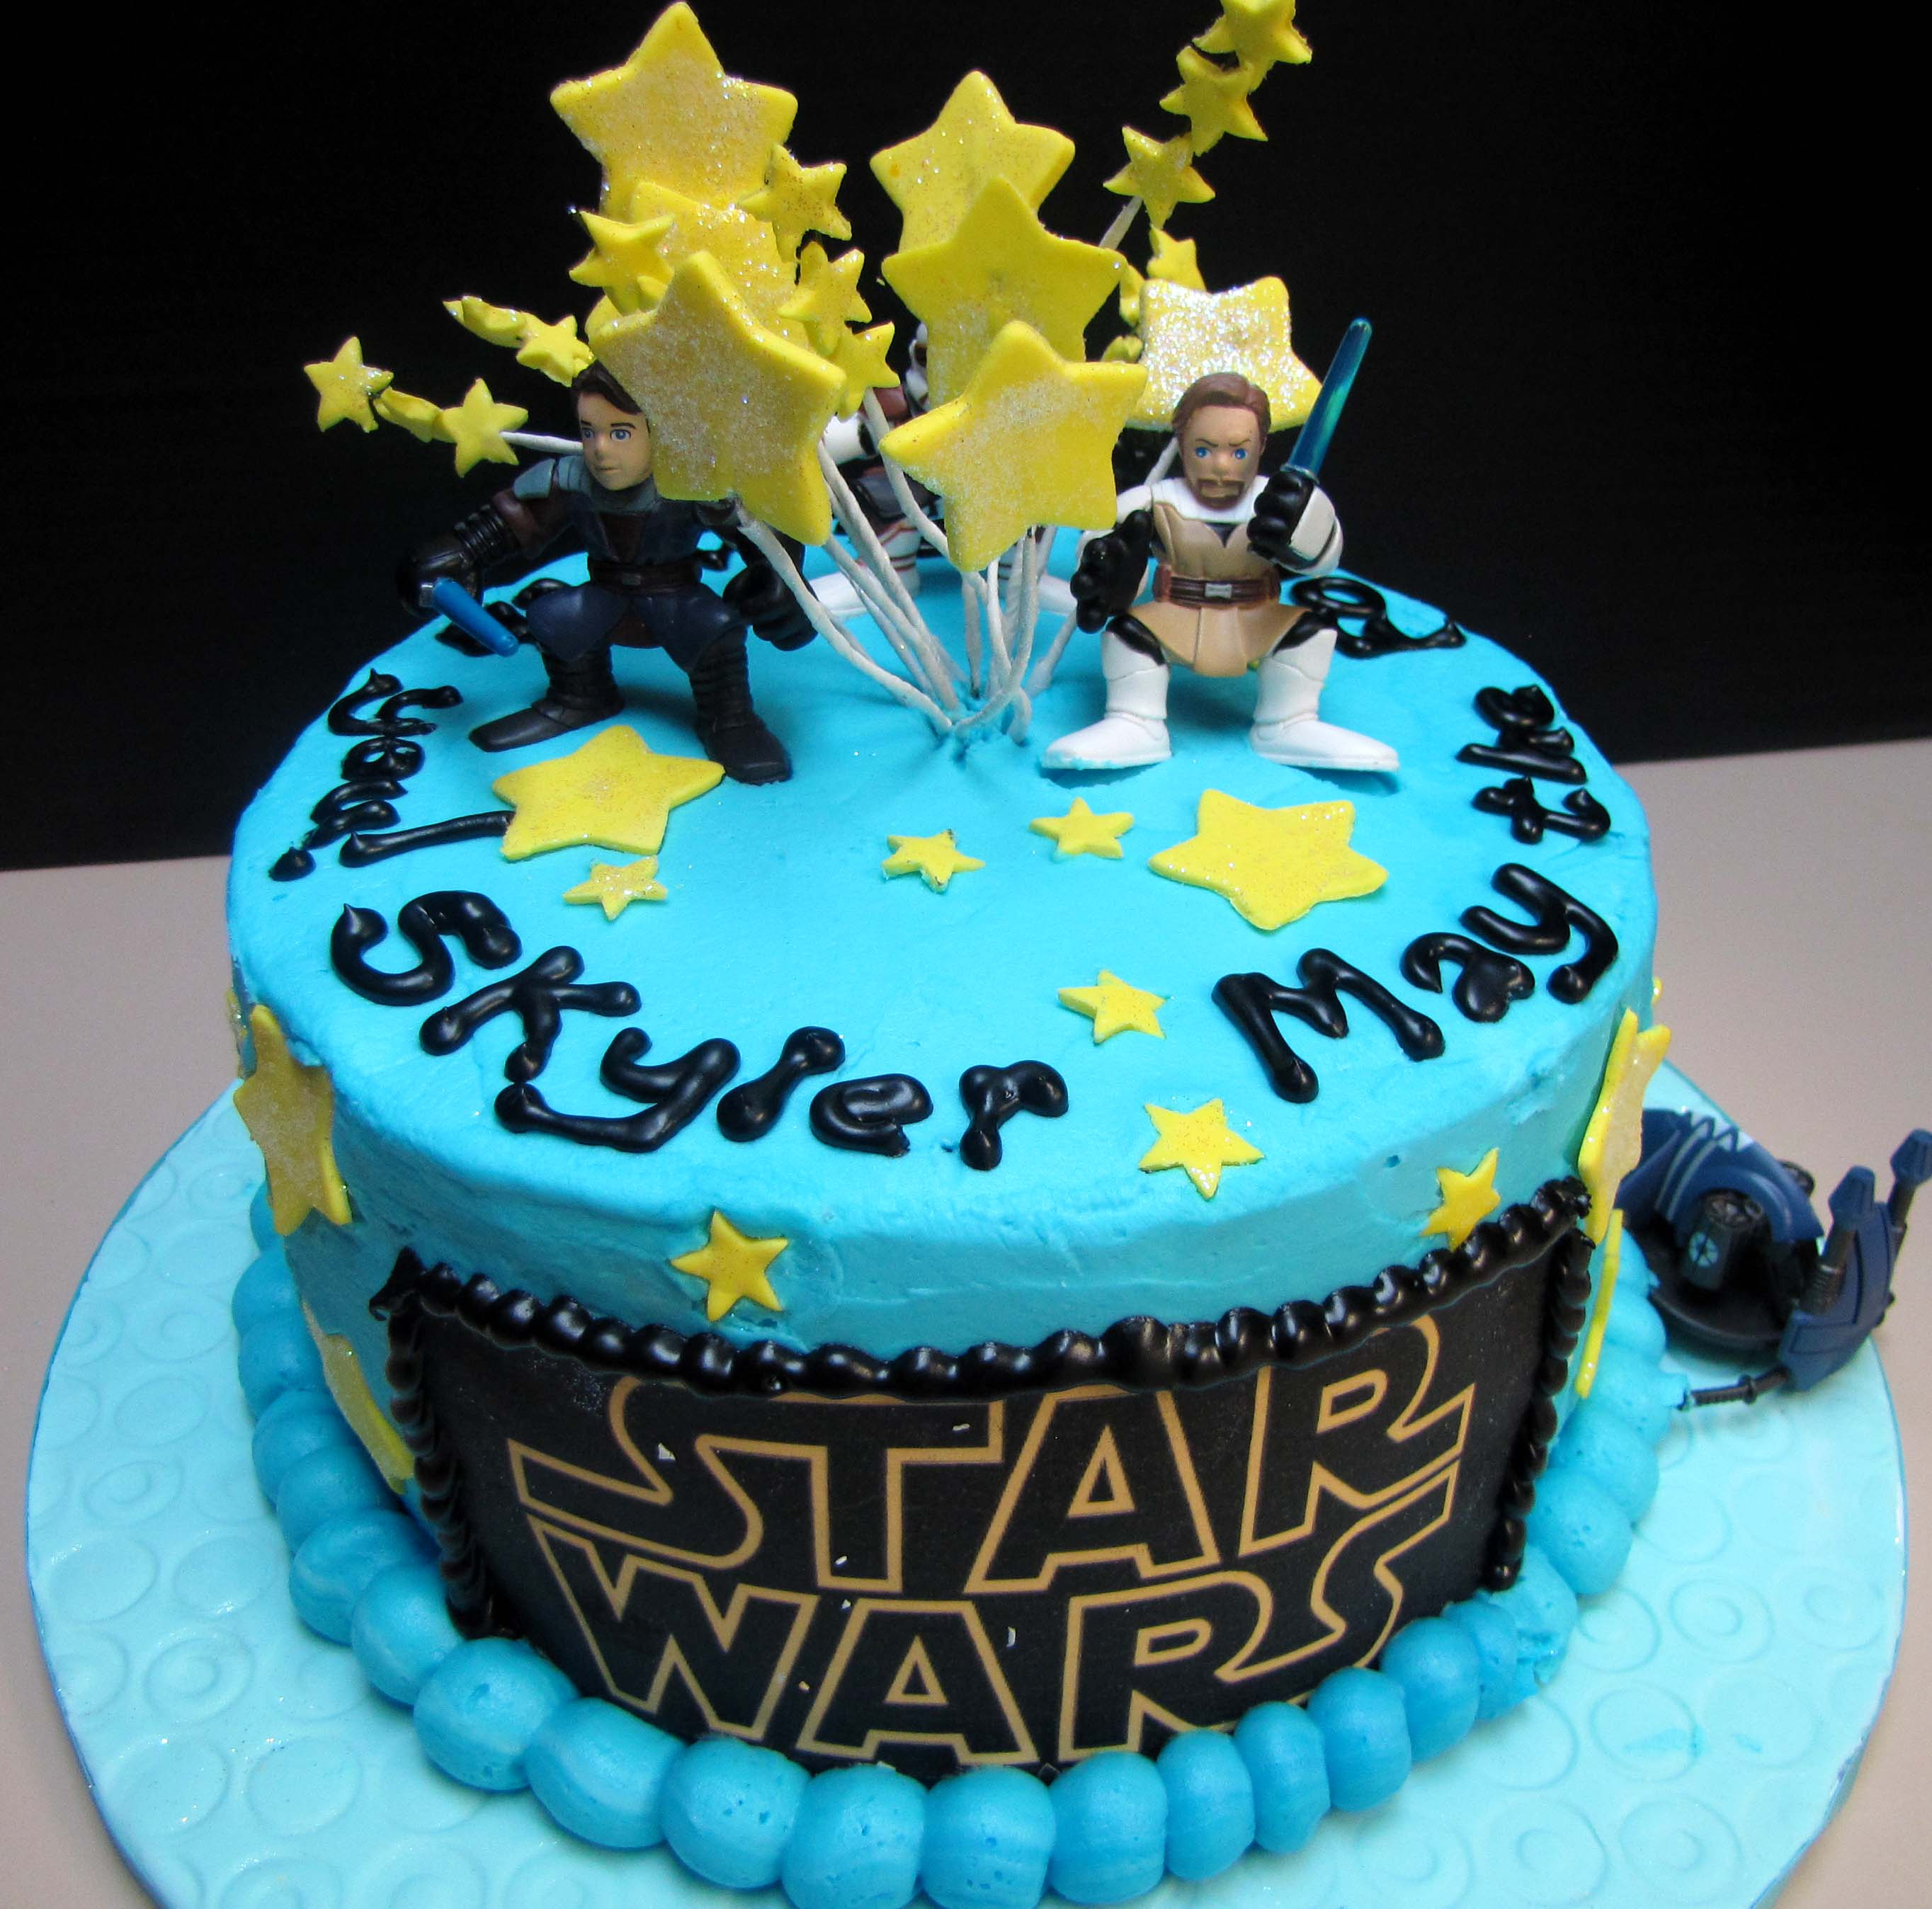 25 Star Wars Themed Birthday Cakes Cakes And Cupcakes Mumbai